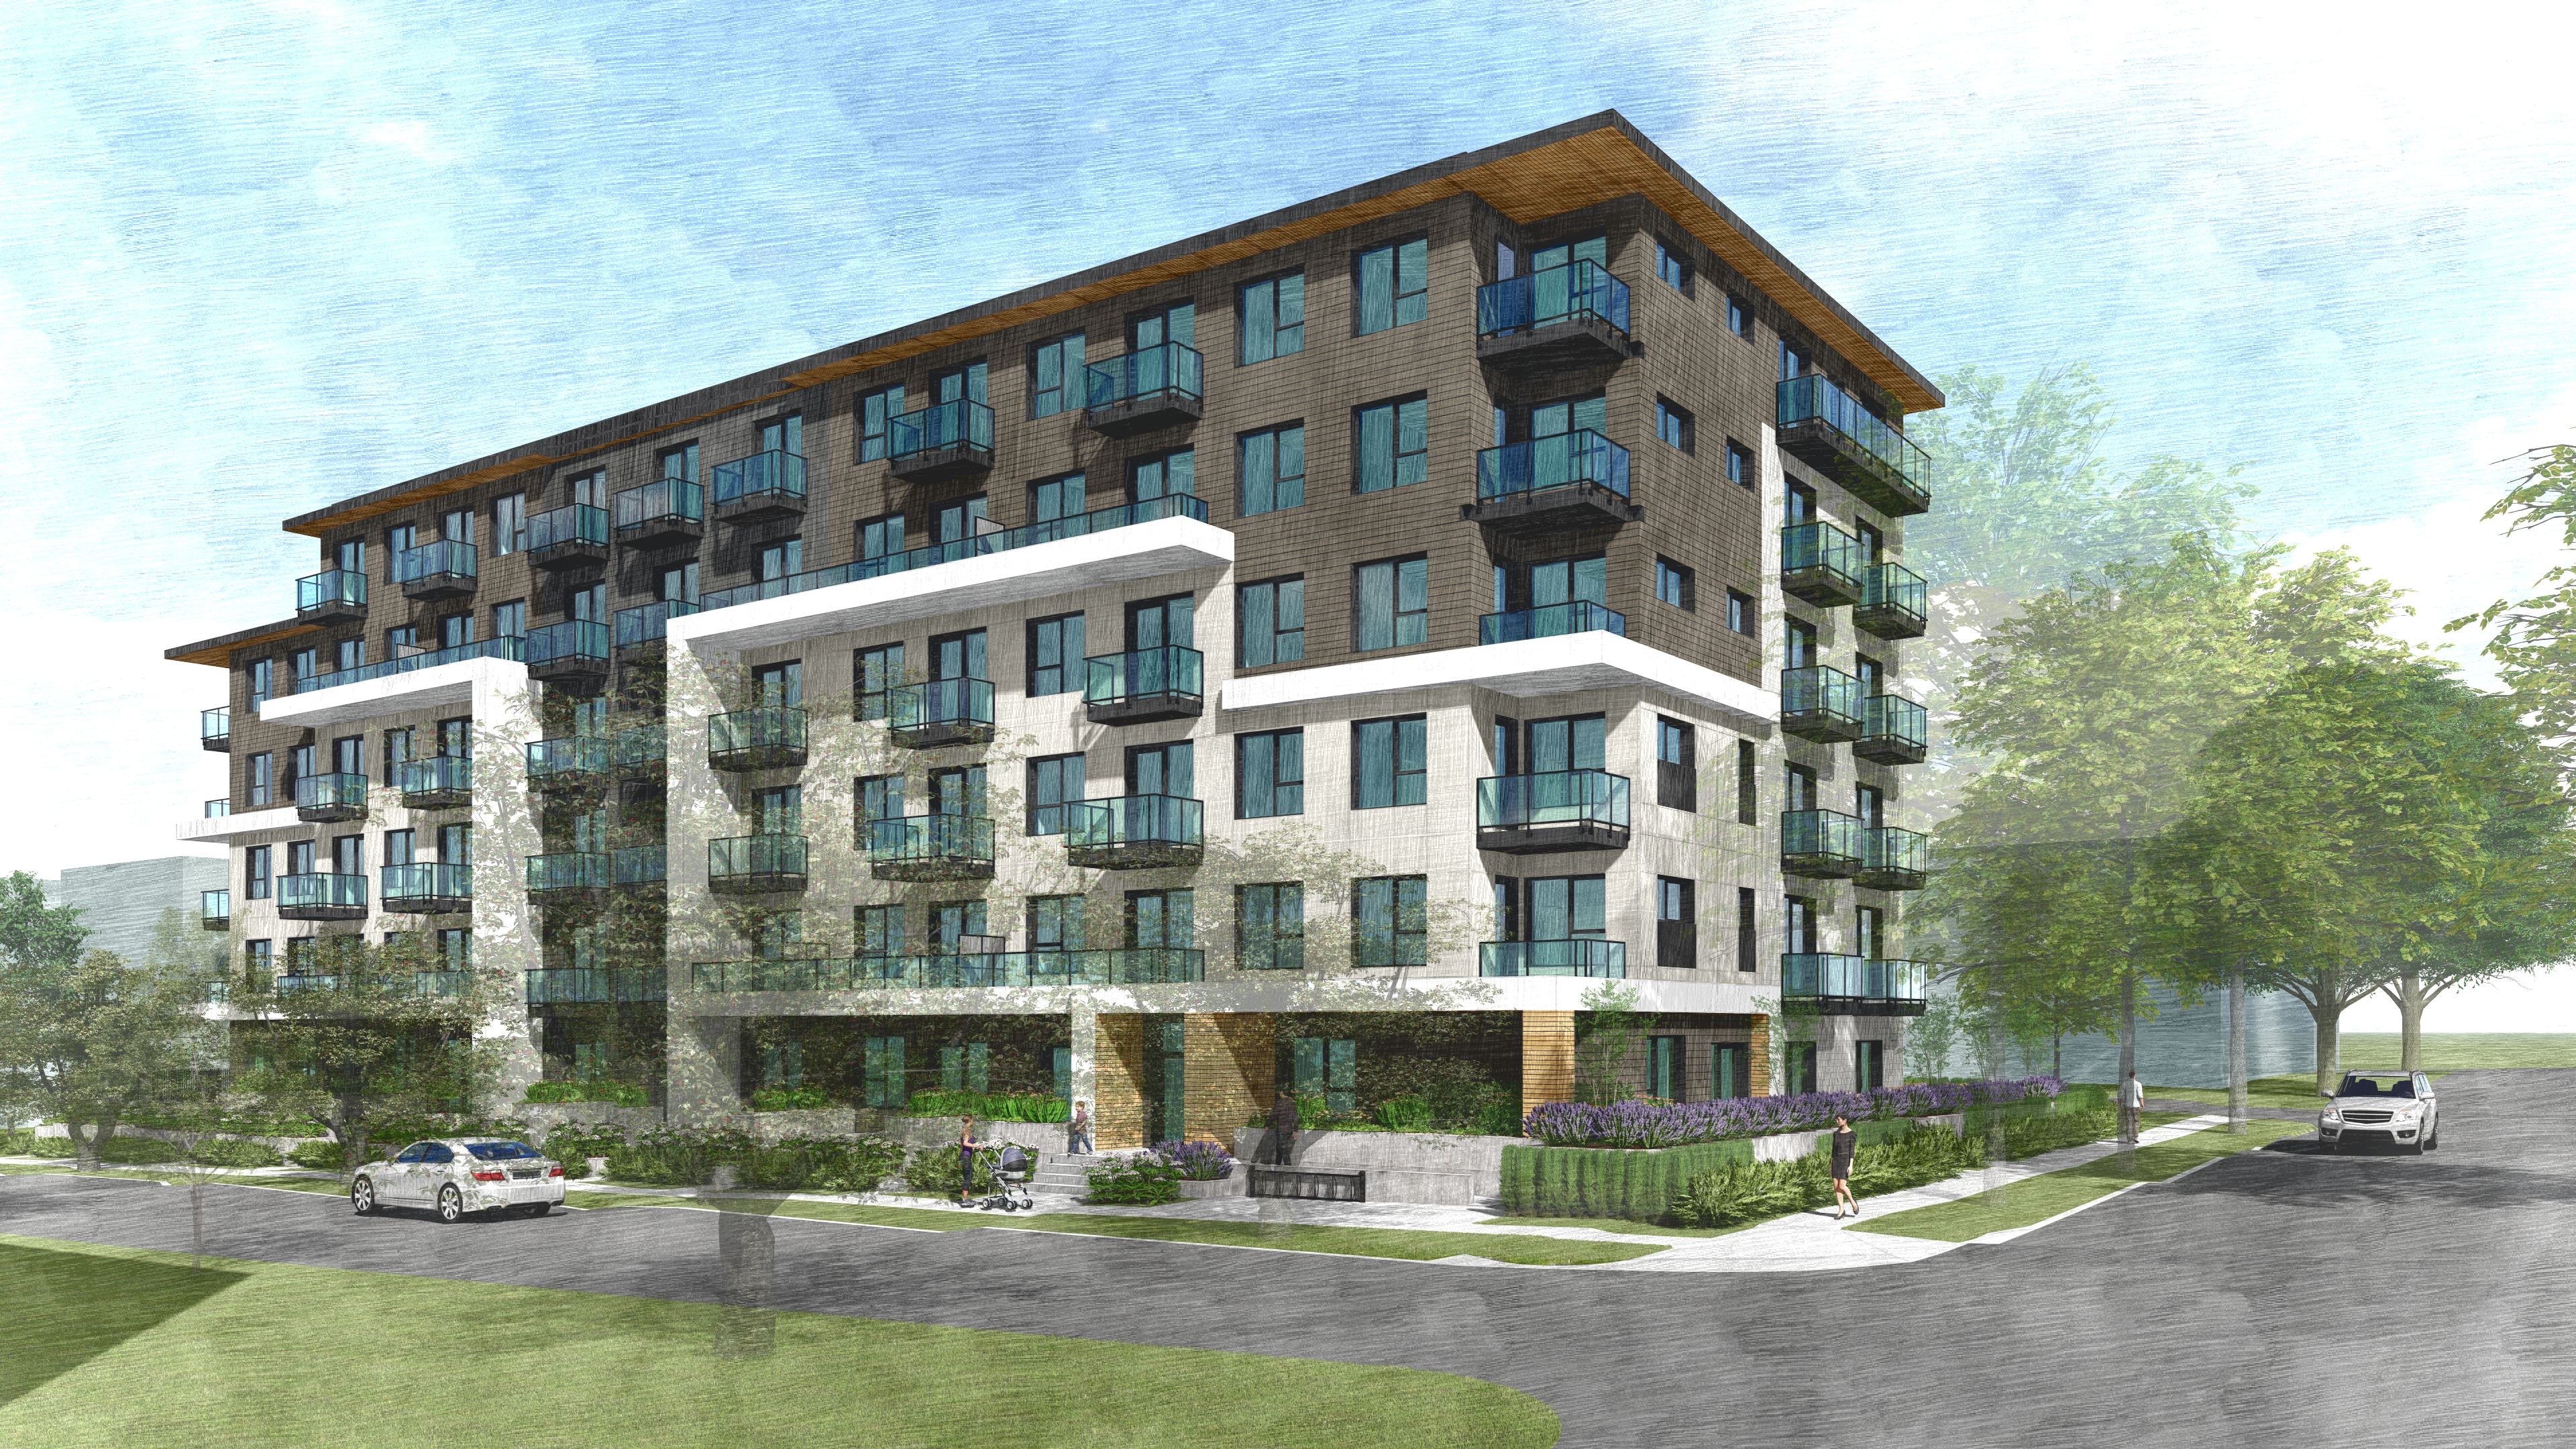 8725 French Street Affordable Housing Rendering